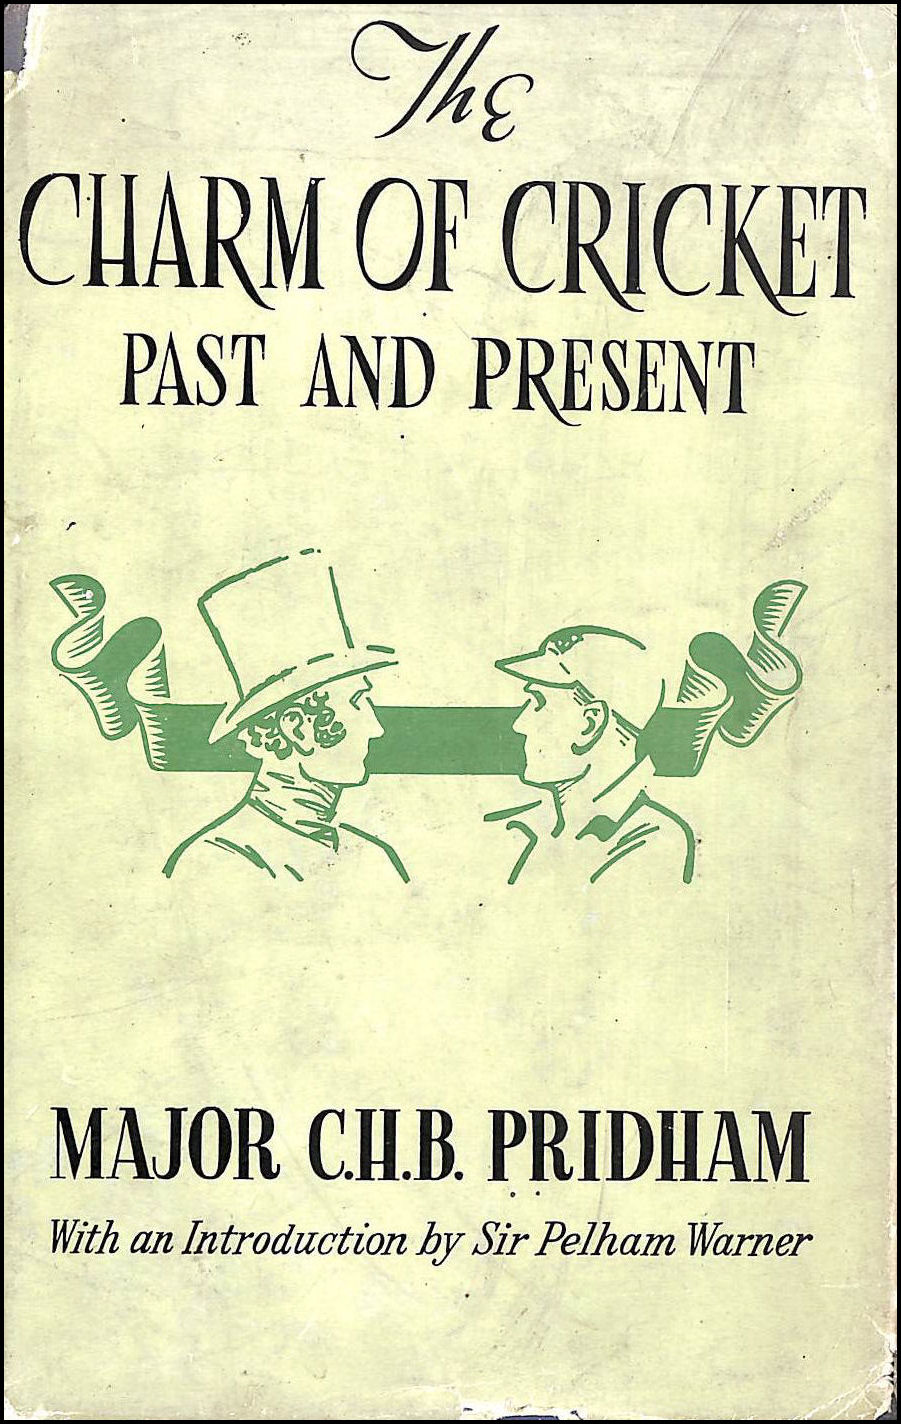 The Charm of Cricket Past and Present, Major C.H.B. Pridham